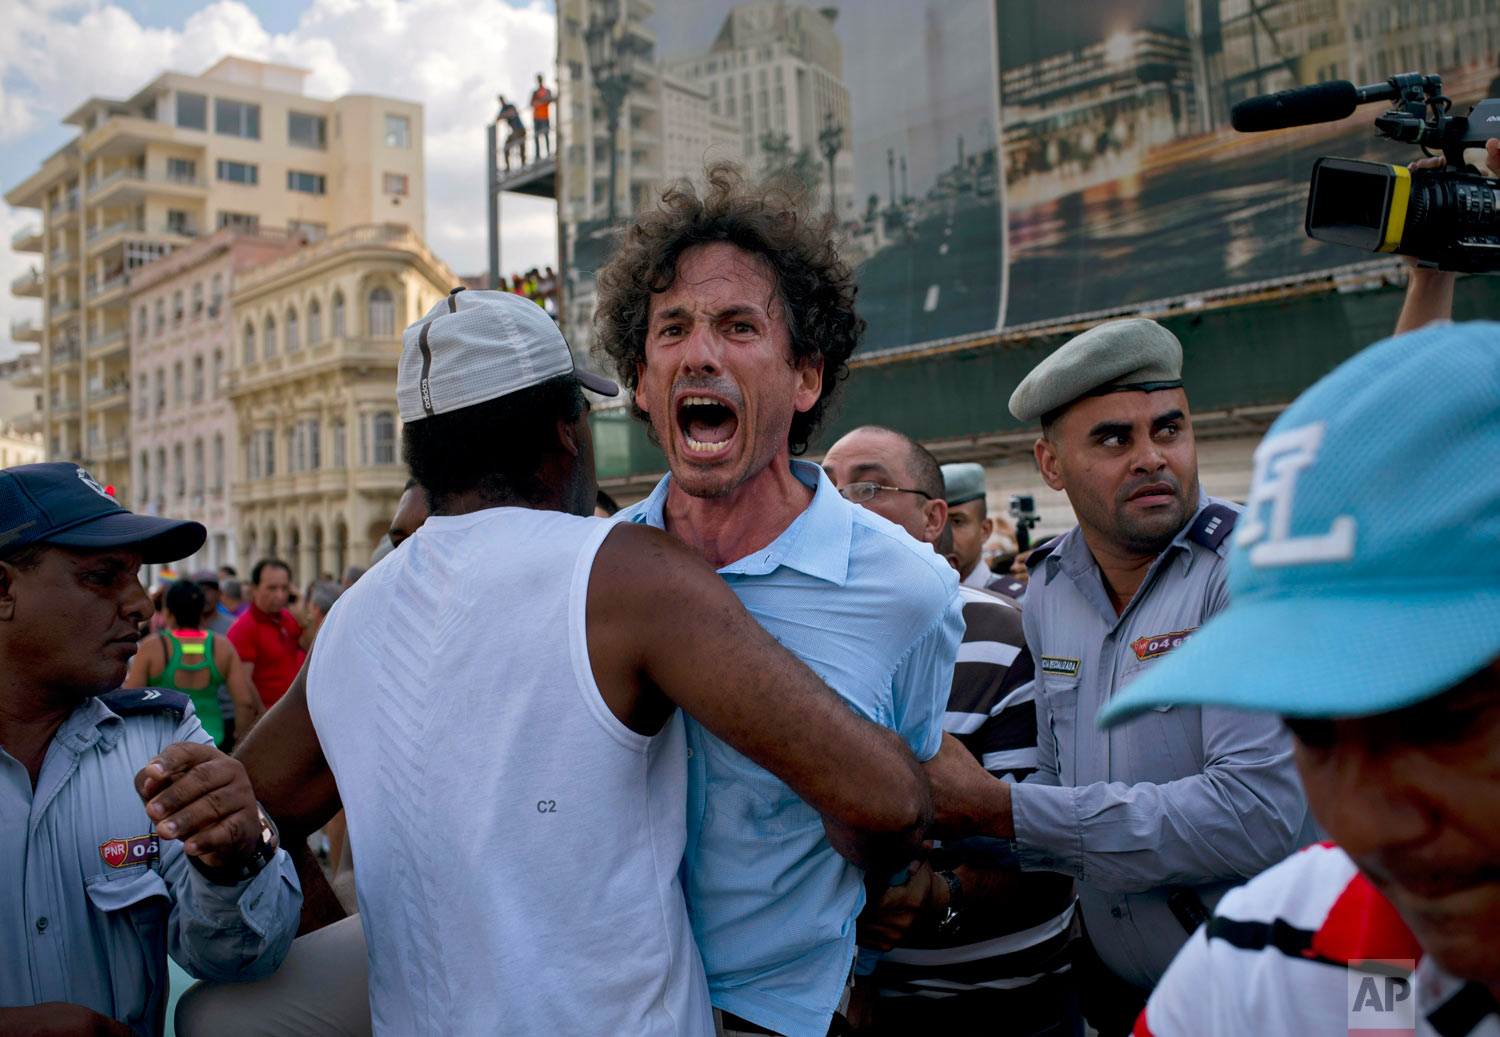 Cuban police detain a gay rights activist during an unauthorized march in Havana, Cuba, Saturday, May 11, 2019.  The march was organized largely using Cuba's new mobile internet, with gay-rights activists and groups of friends calling for a march over Facebook and WhatsApp after the government-run gay rights organization cancelled a march. (AP Photo/Ramon Espinosa)